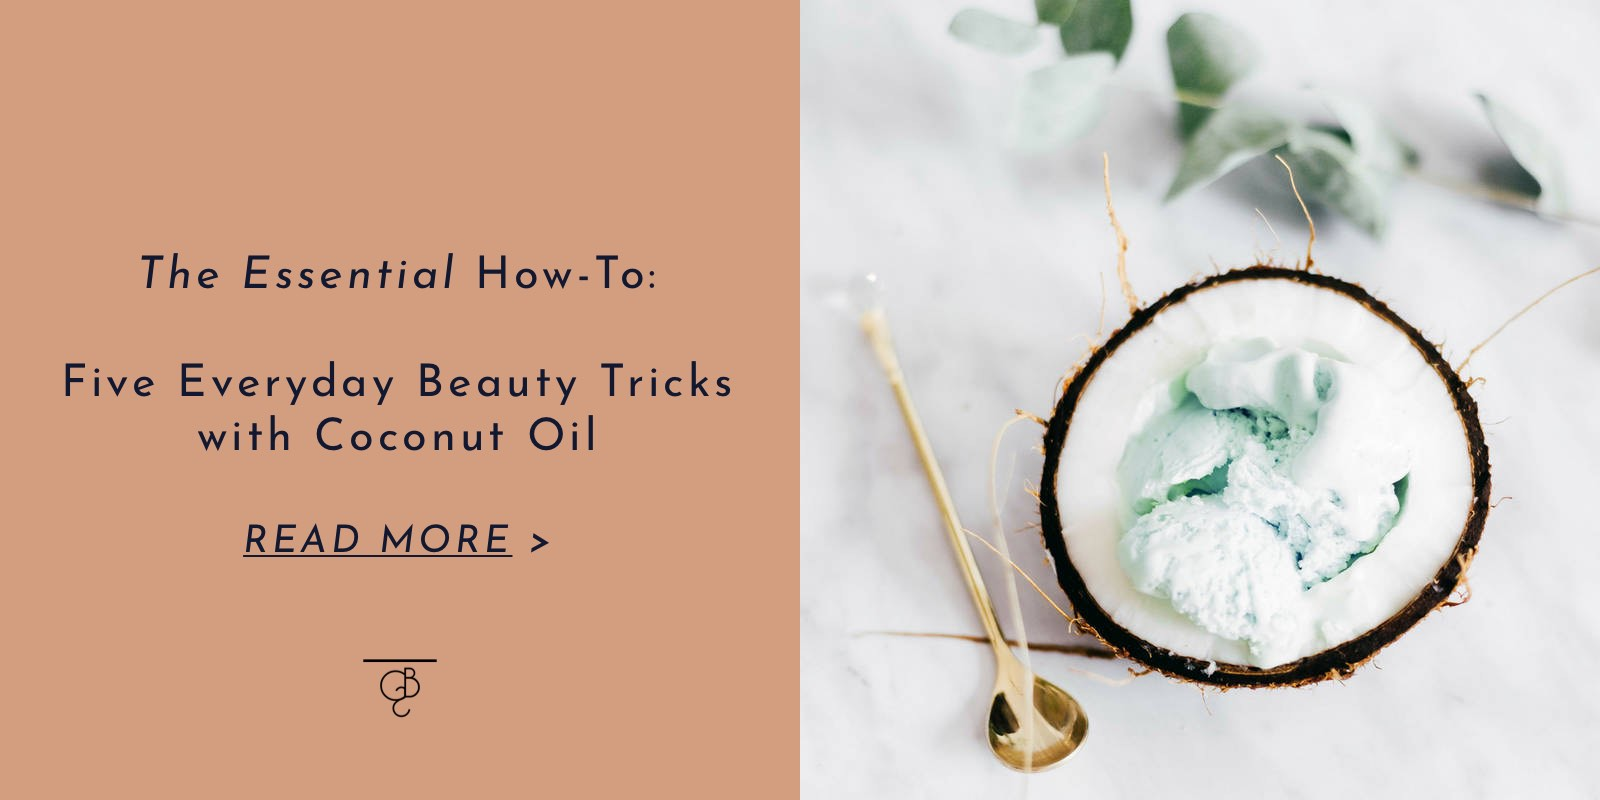 5-beauty-tricks-coconut-oil-hk-gsb